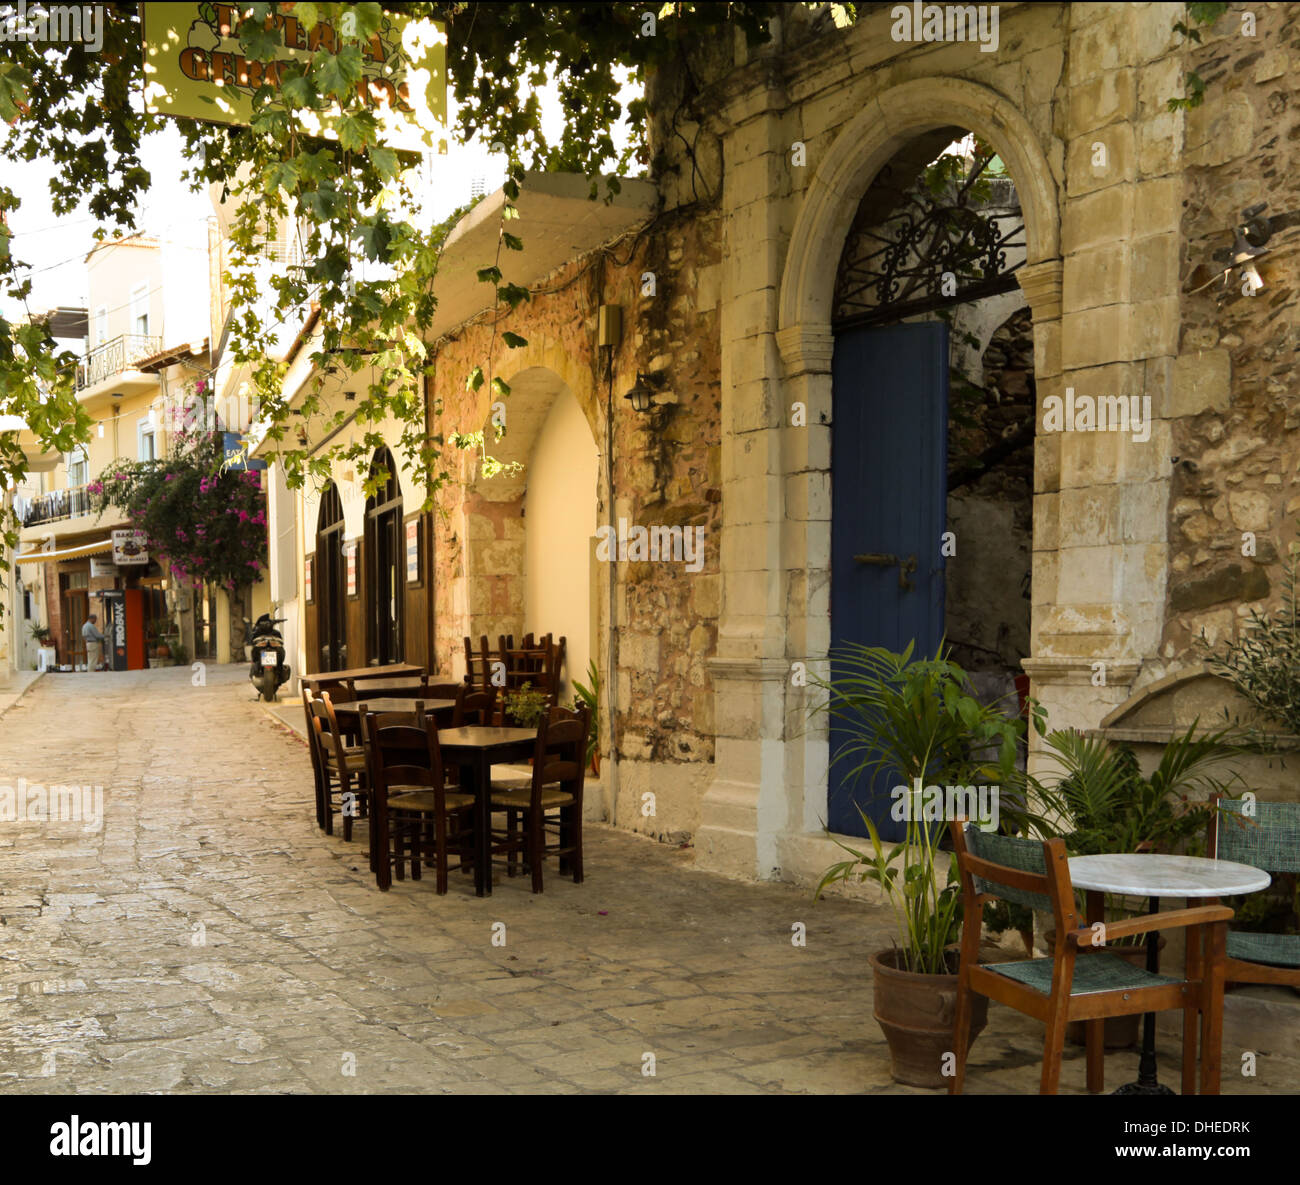 Authentic Greek mood, tranquil atmosphere with traditional kafenion, Panormo, Rethymno region, on the island of Crete, Greece. - Stock Image